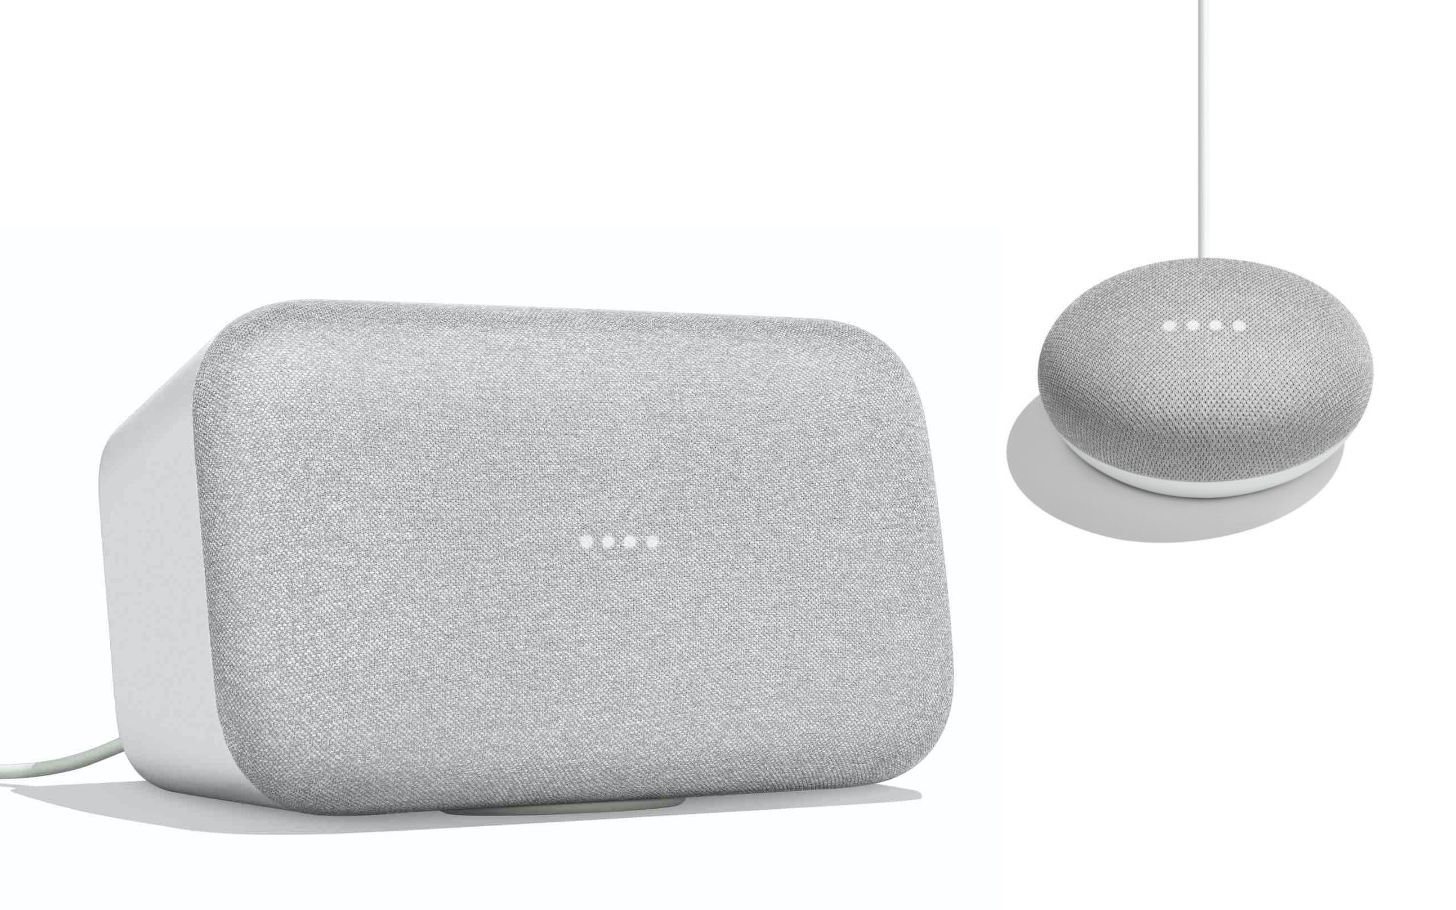 Pick Up This Google Home Max And Home Mini Bundle 188 For Less Than The